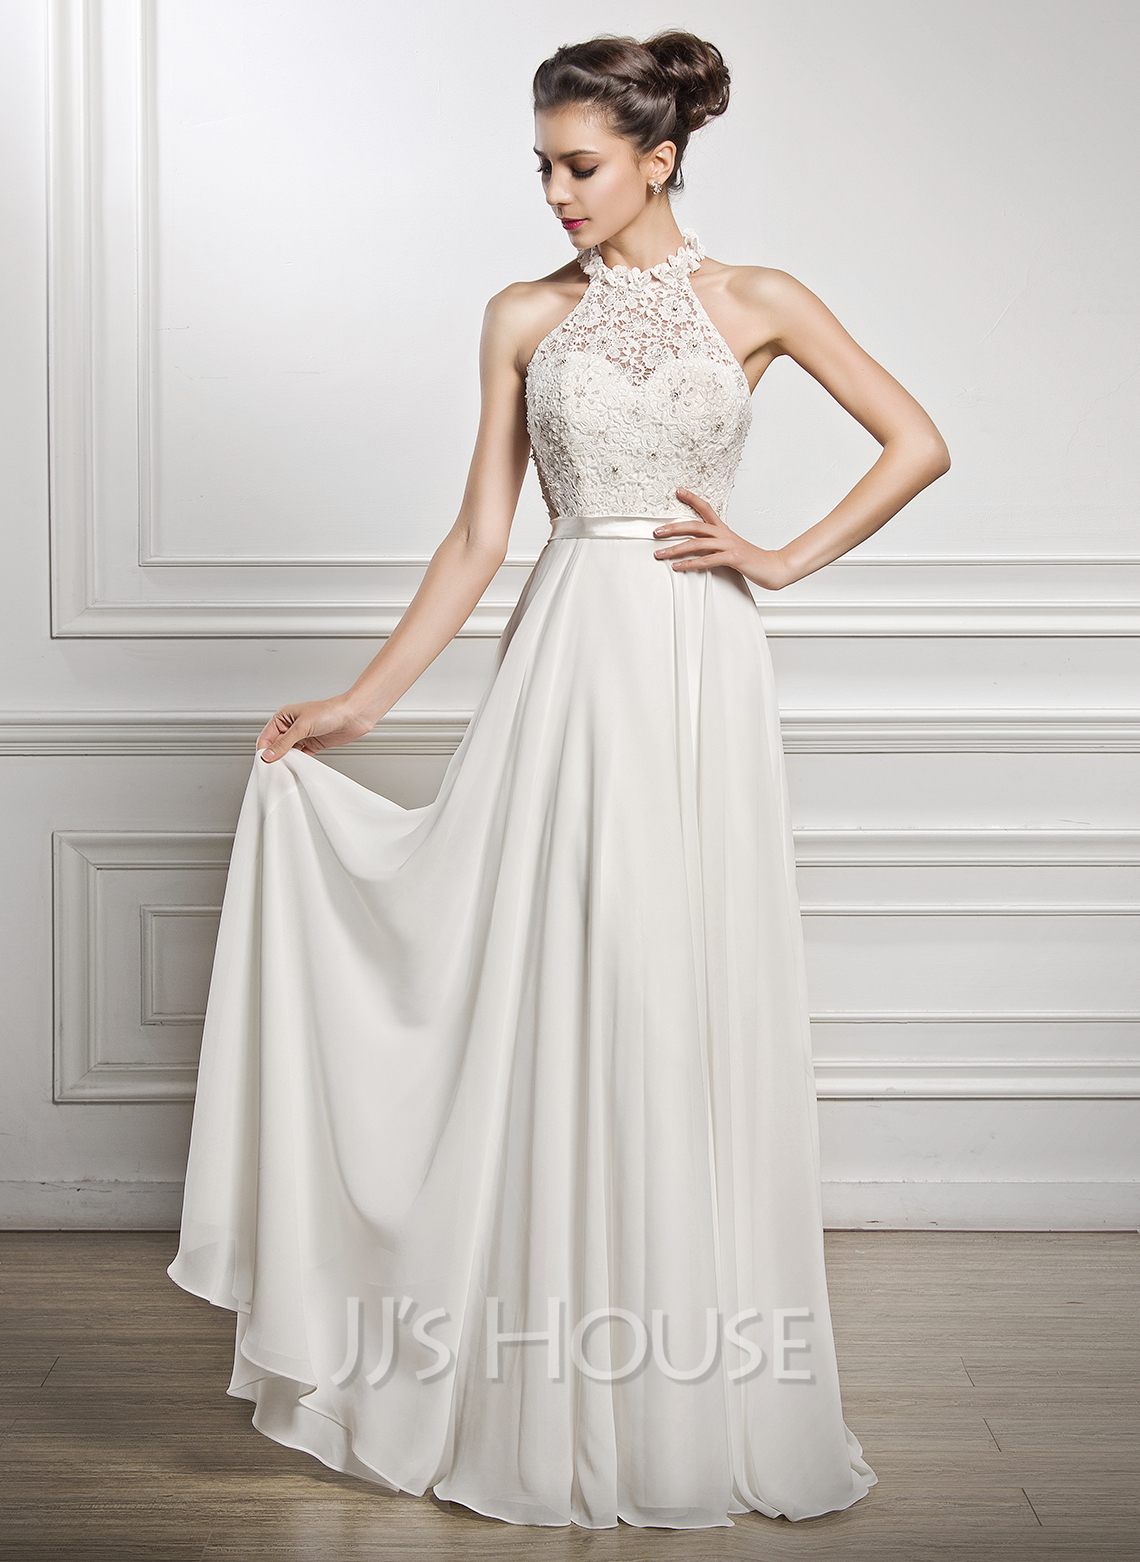 A Line Princess Scoop Neck Floor Length Chiffon Lace Wedding Dress With Beading Loading Zoom